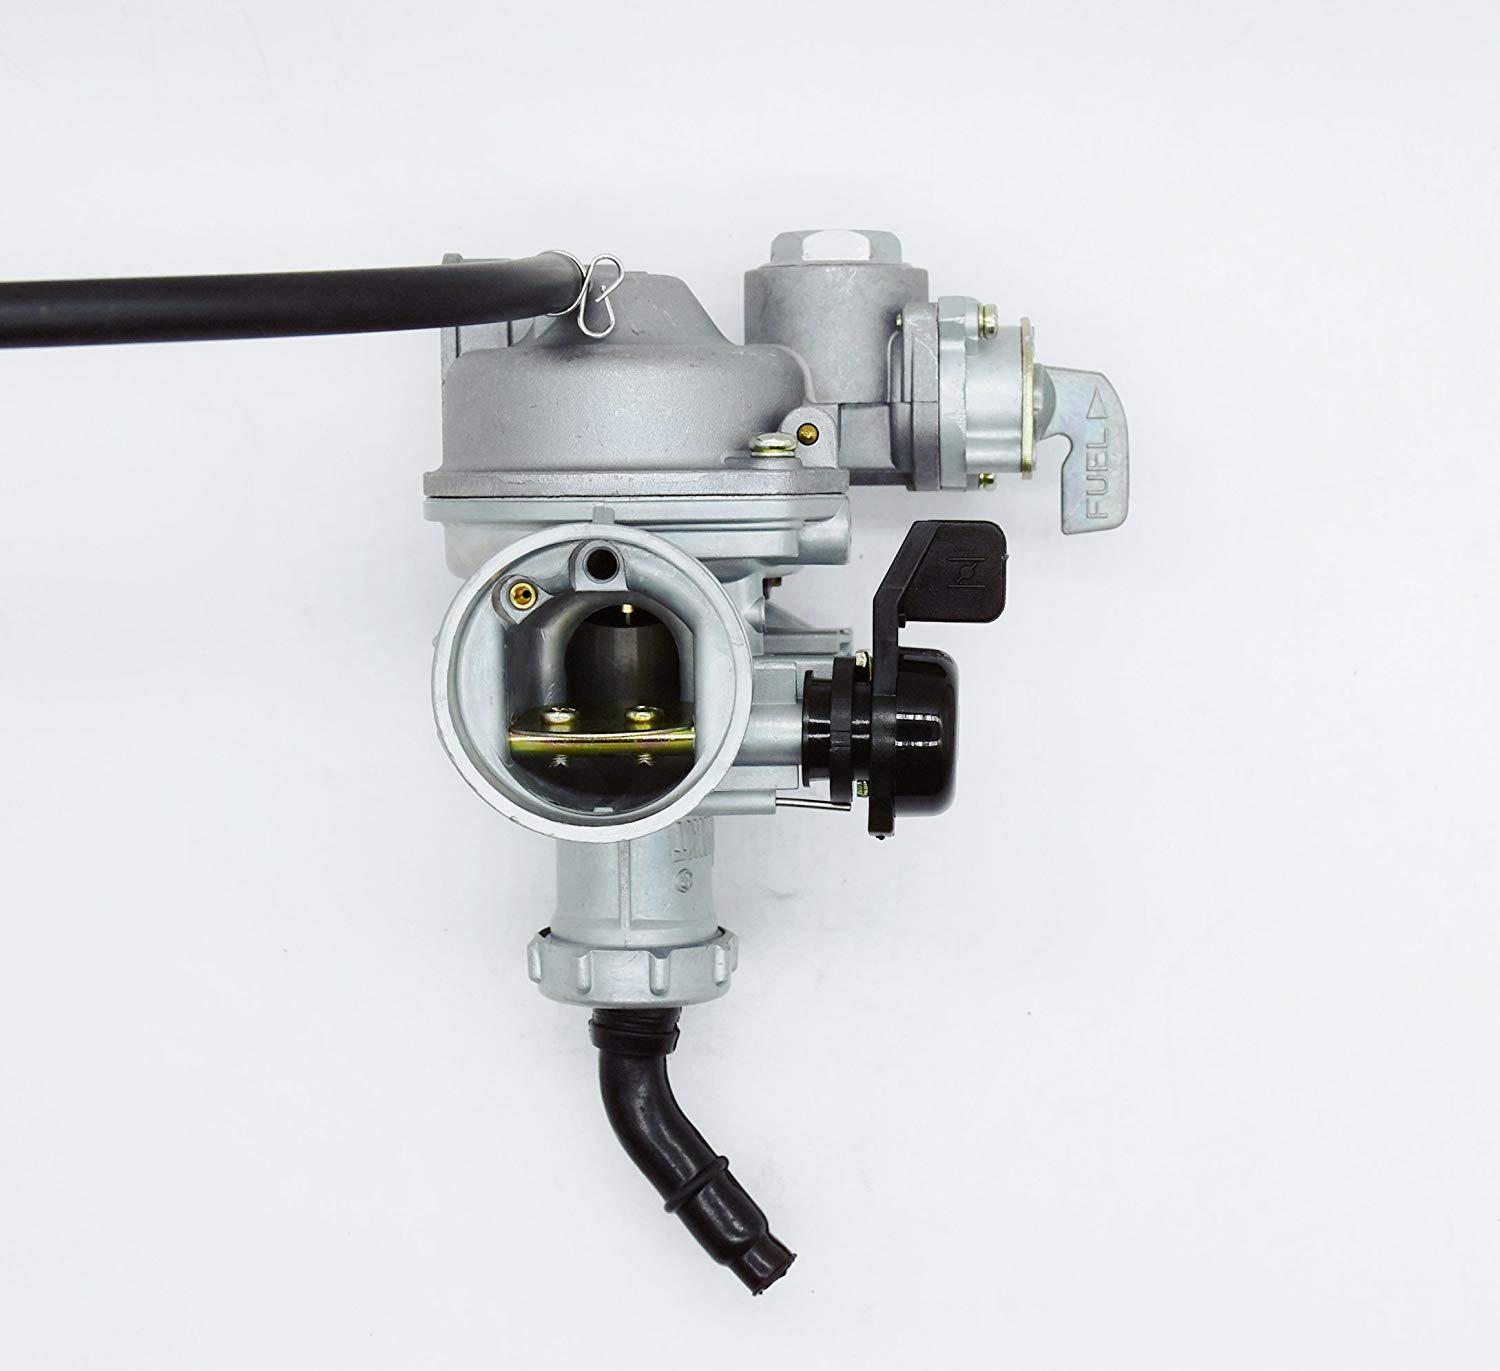 Atv Parts & Accessories New Carburetor Carb Pz22 22mm For 70cc 110cc 125cc Quad Atv Dirt Bike Hand Choke Back To Search Resultsautomobiles & Motorcycles